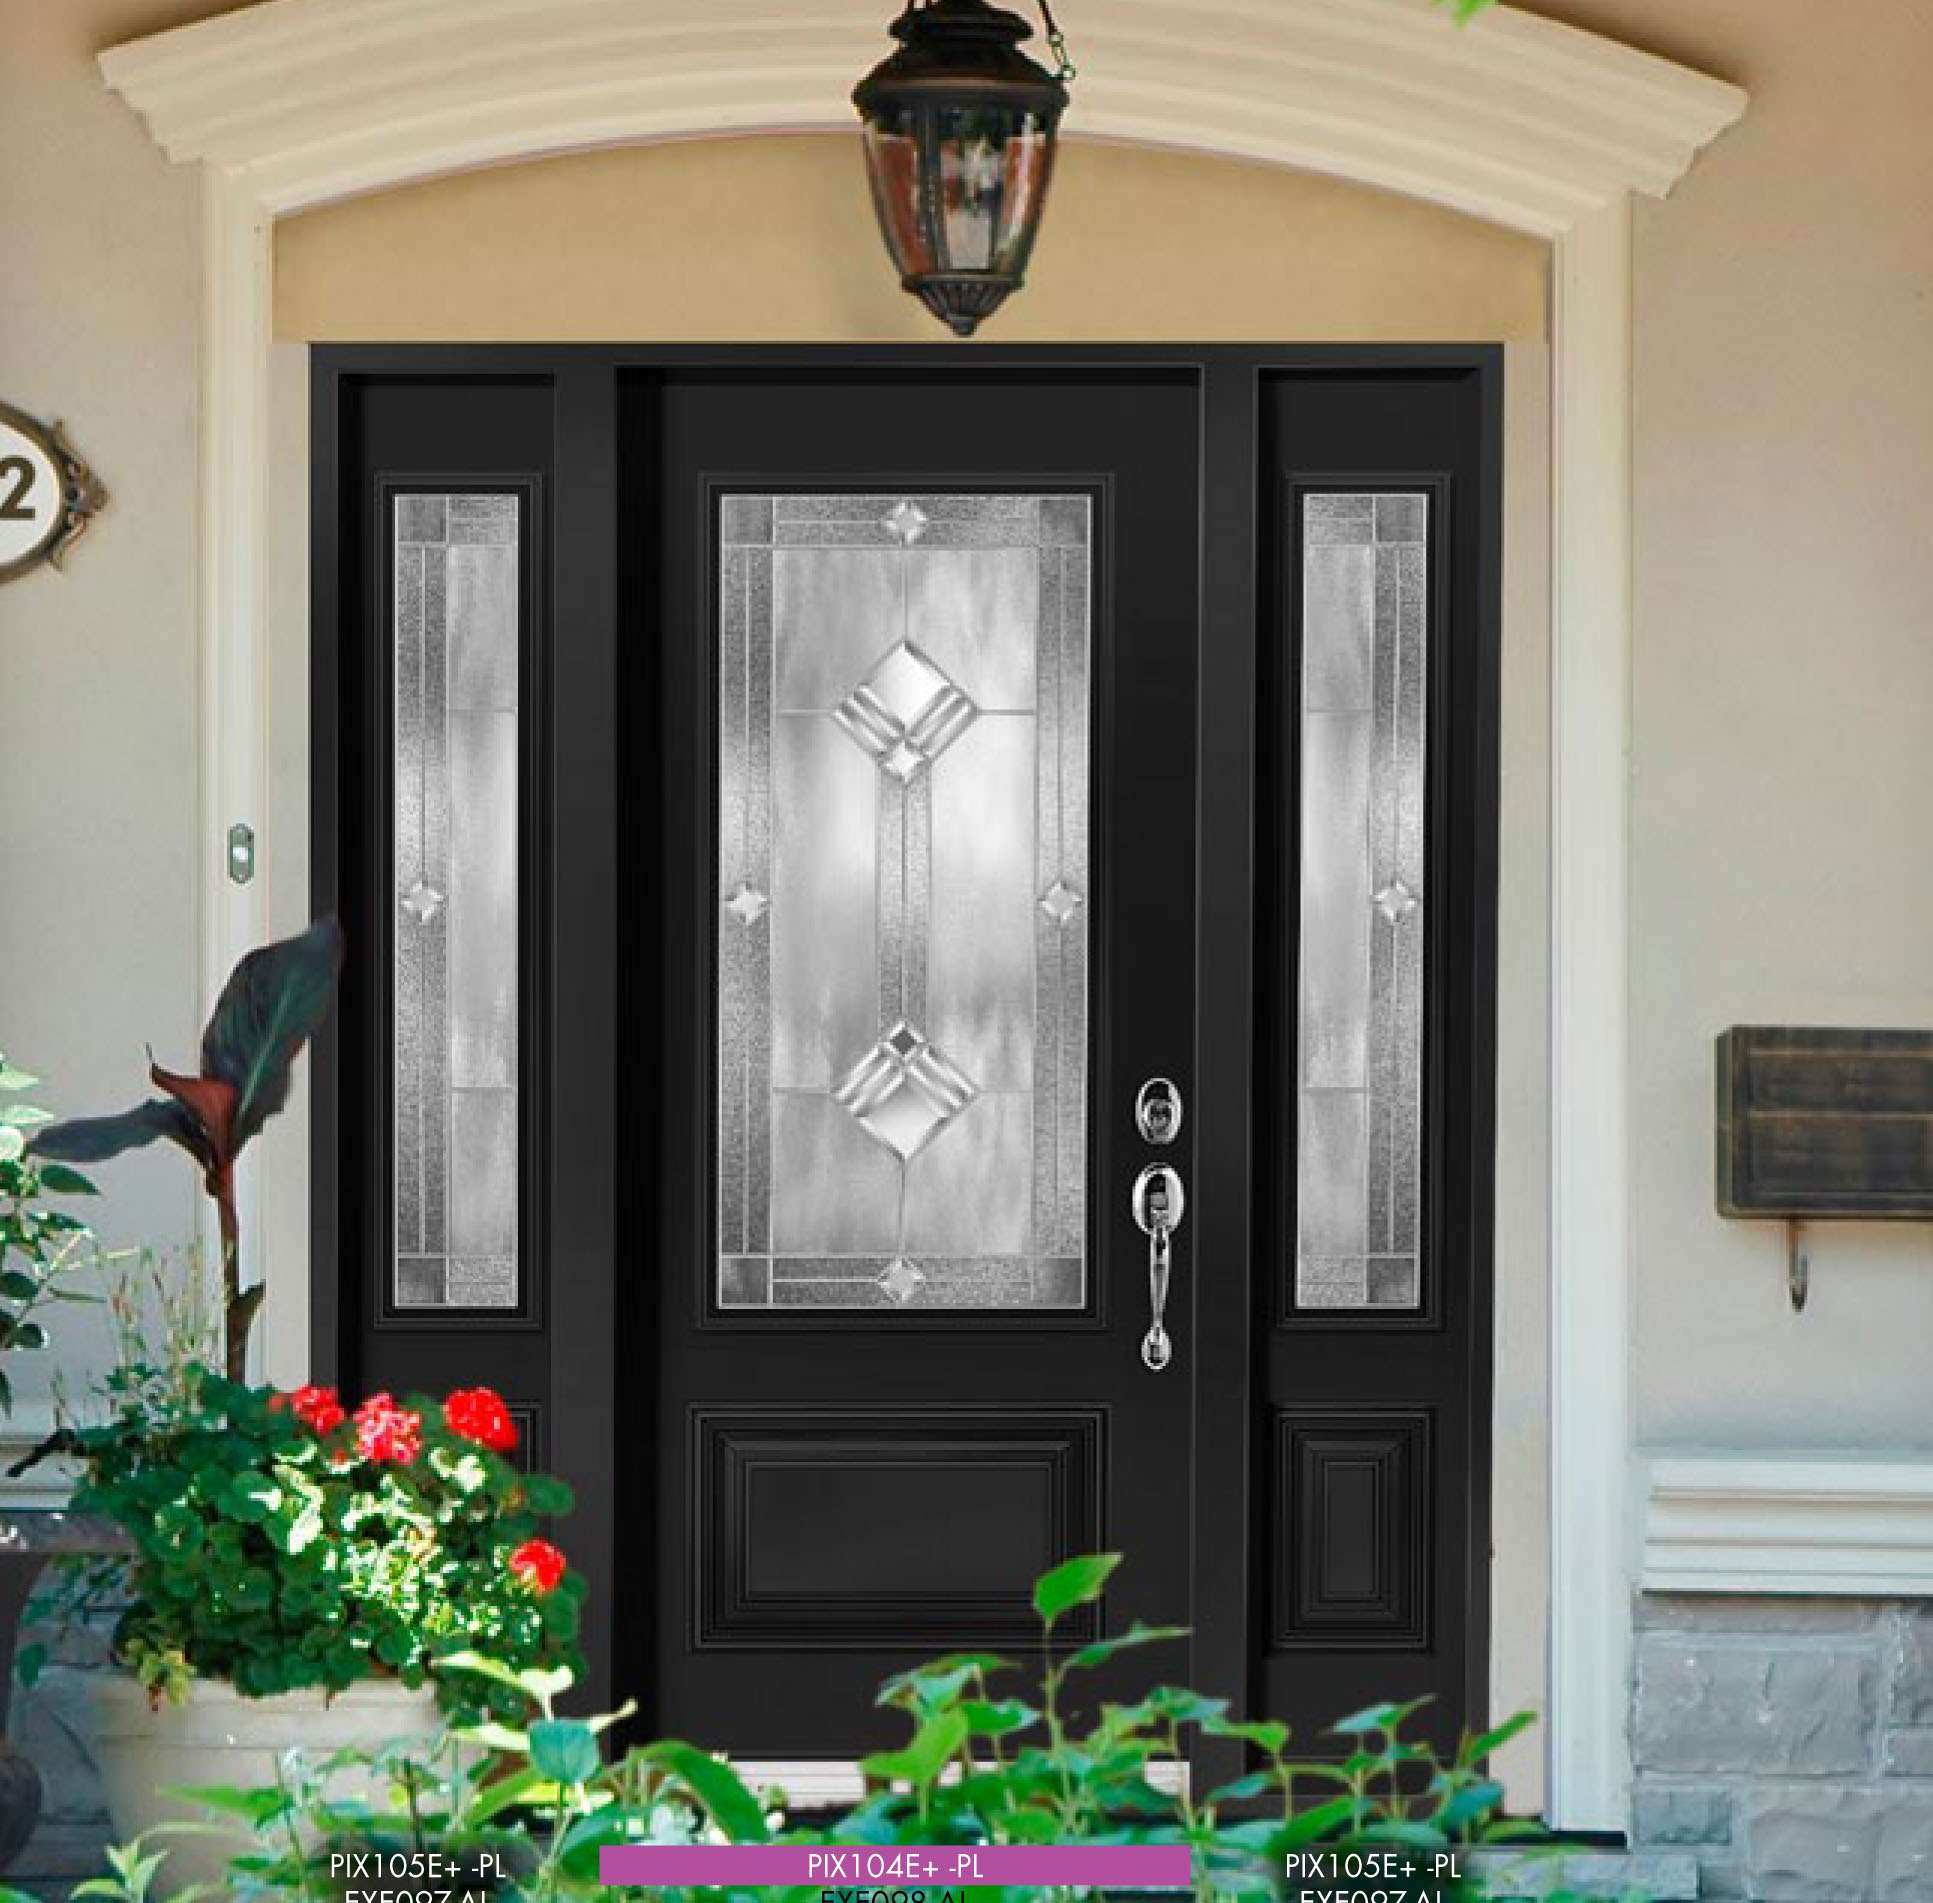 Entry doors brock doors windows brock doors windows for Entry door manufacturers